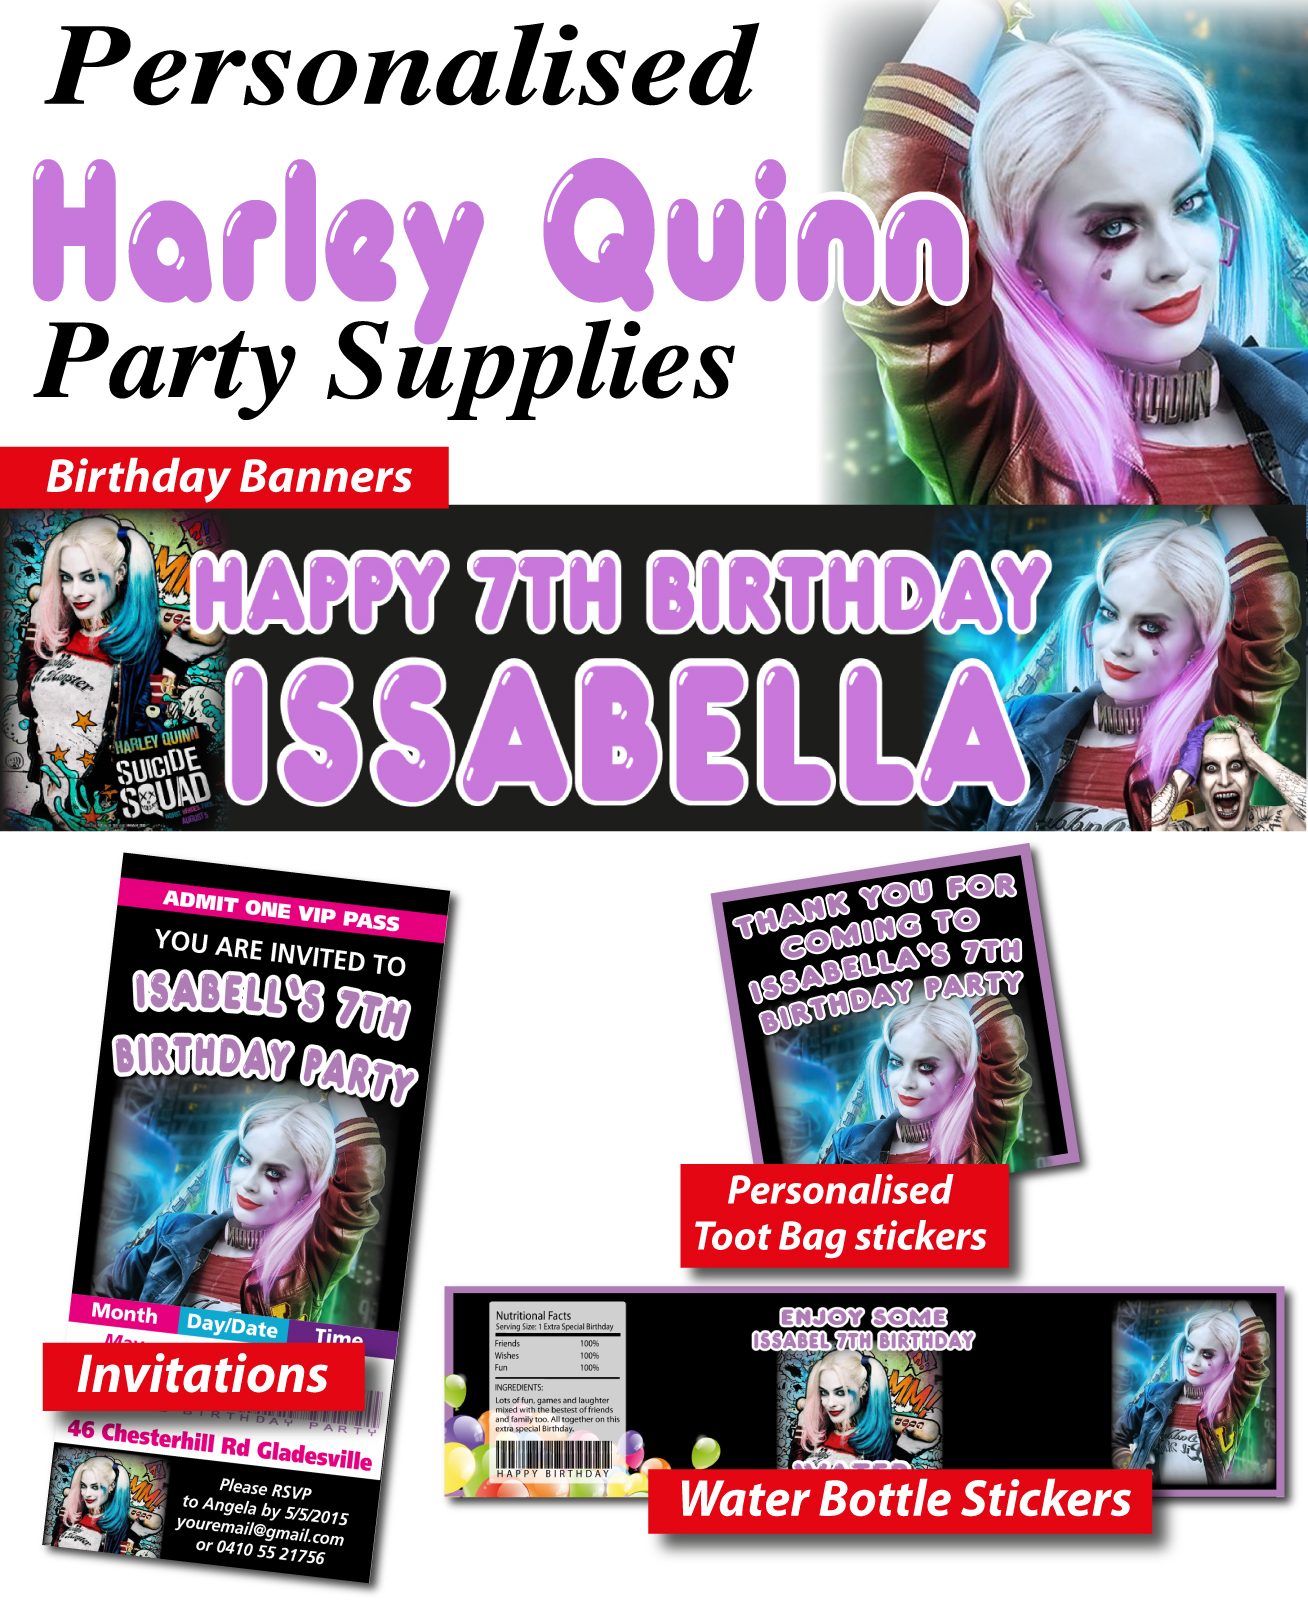 harley-quinn-party-ebay.jpg